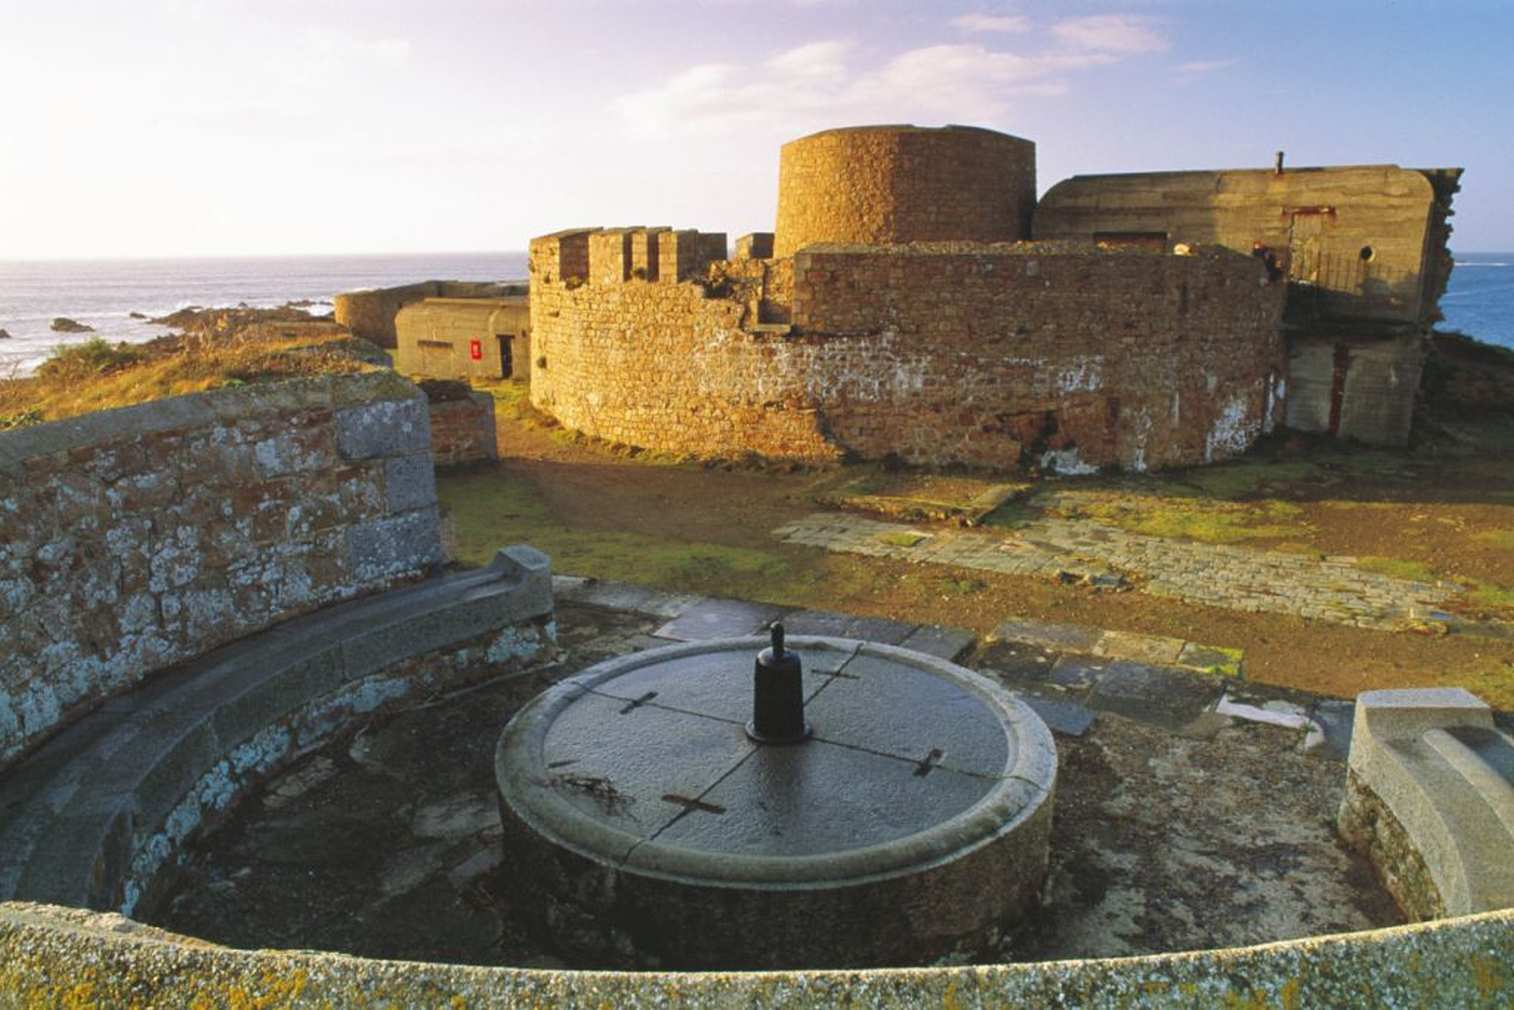 Fort Hommet, a complex of fortifications in Guernsey